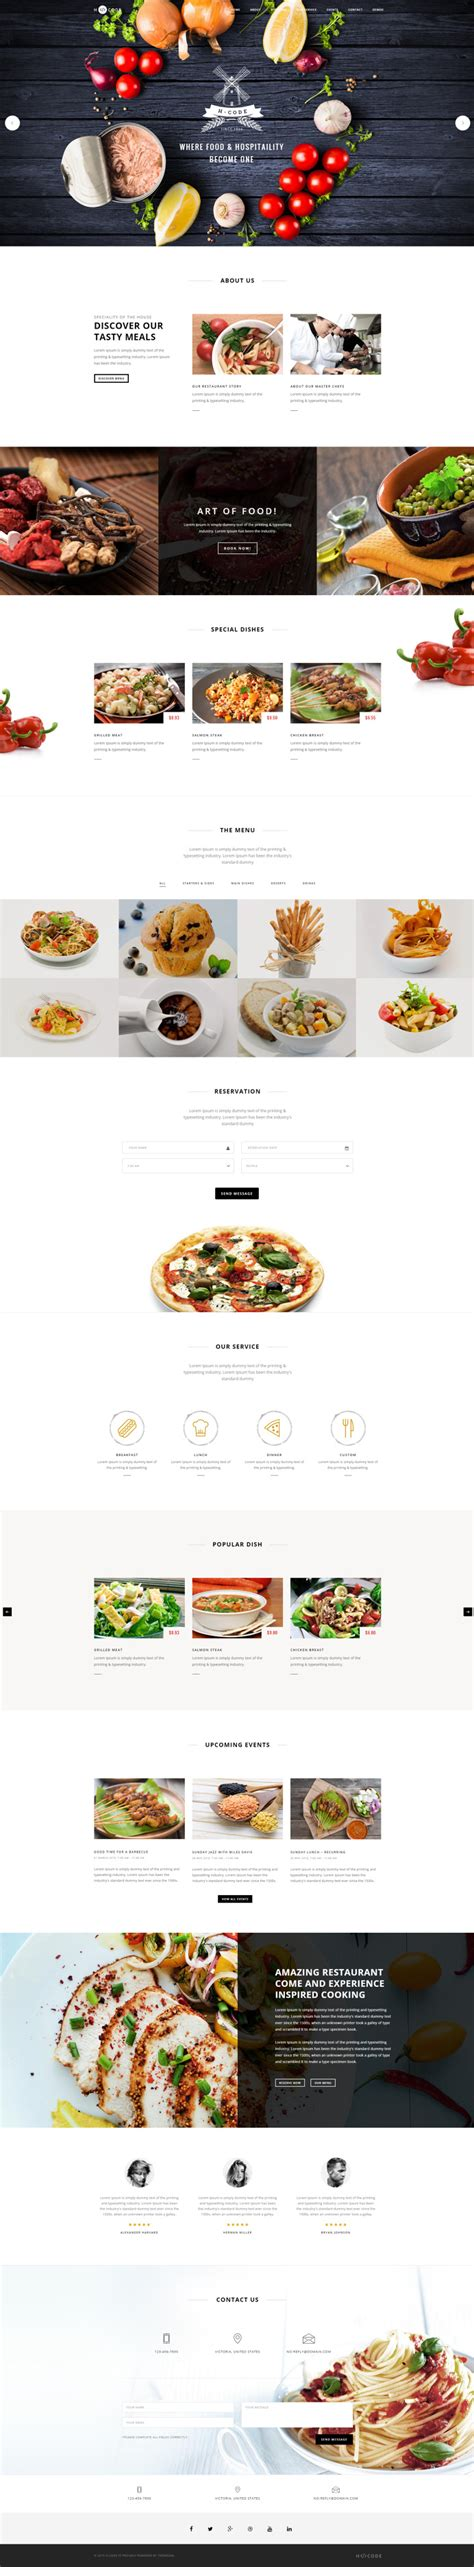 designspiration theme best onepage website templates themes code images on